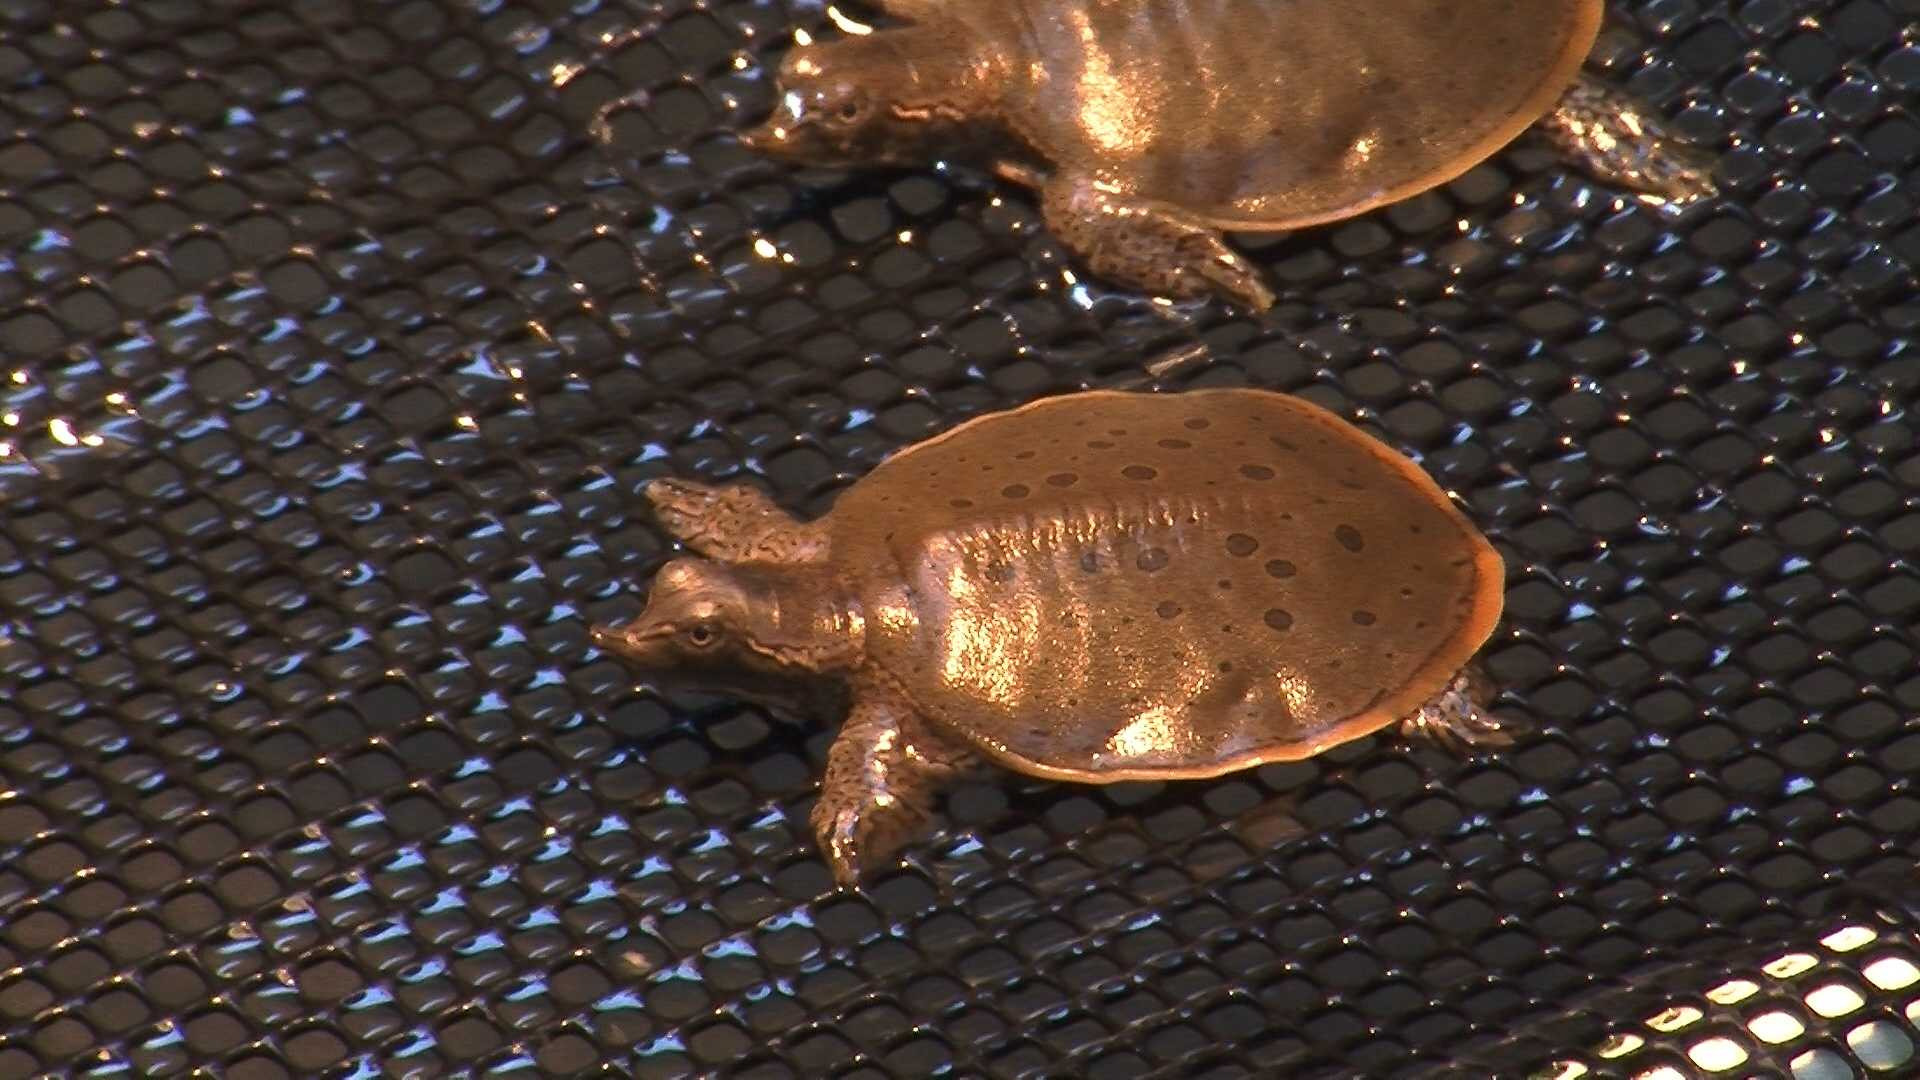 An aquarium receives a special delivery of babies that need some TLC.